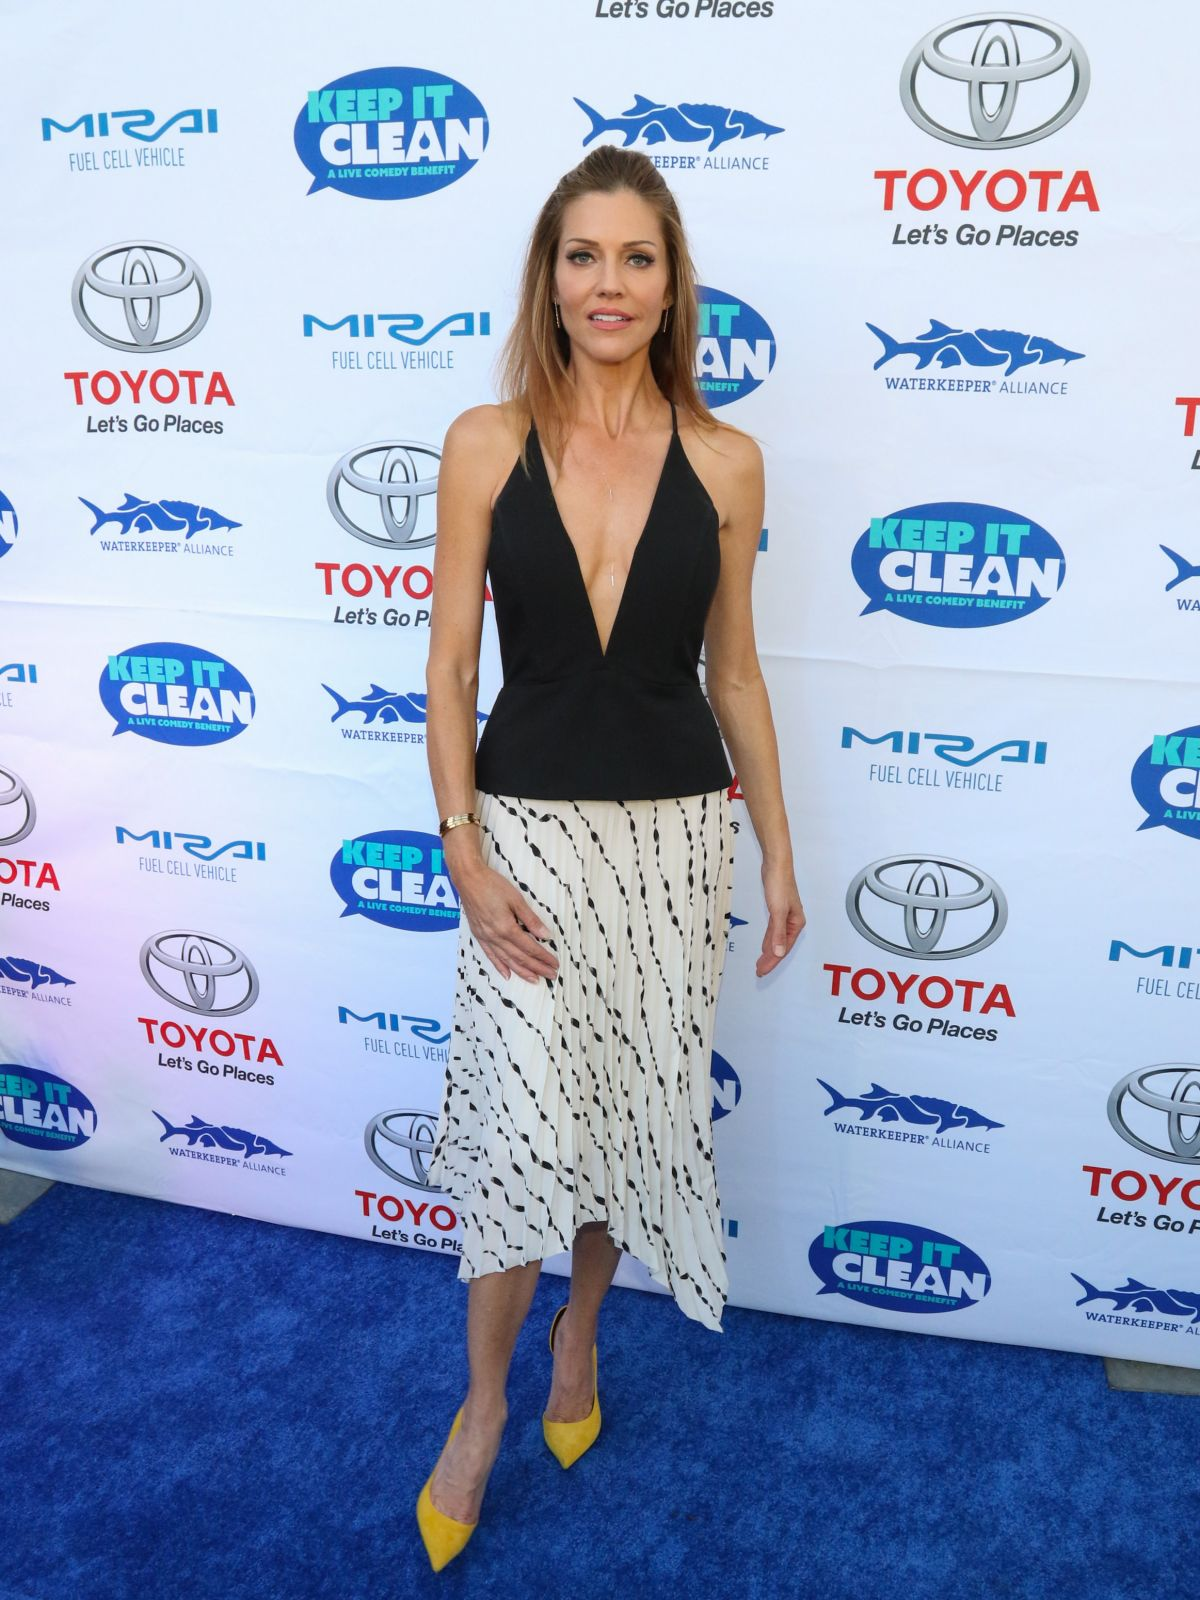 TRICIA HELFER at Keep It Clean Comedy Benefit in Los Angeles 04/21/2017